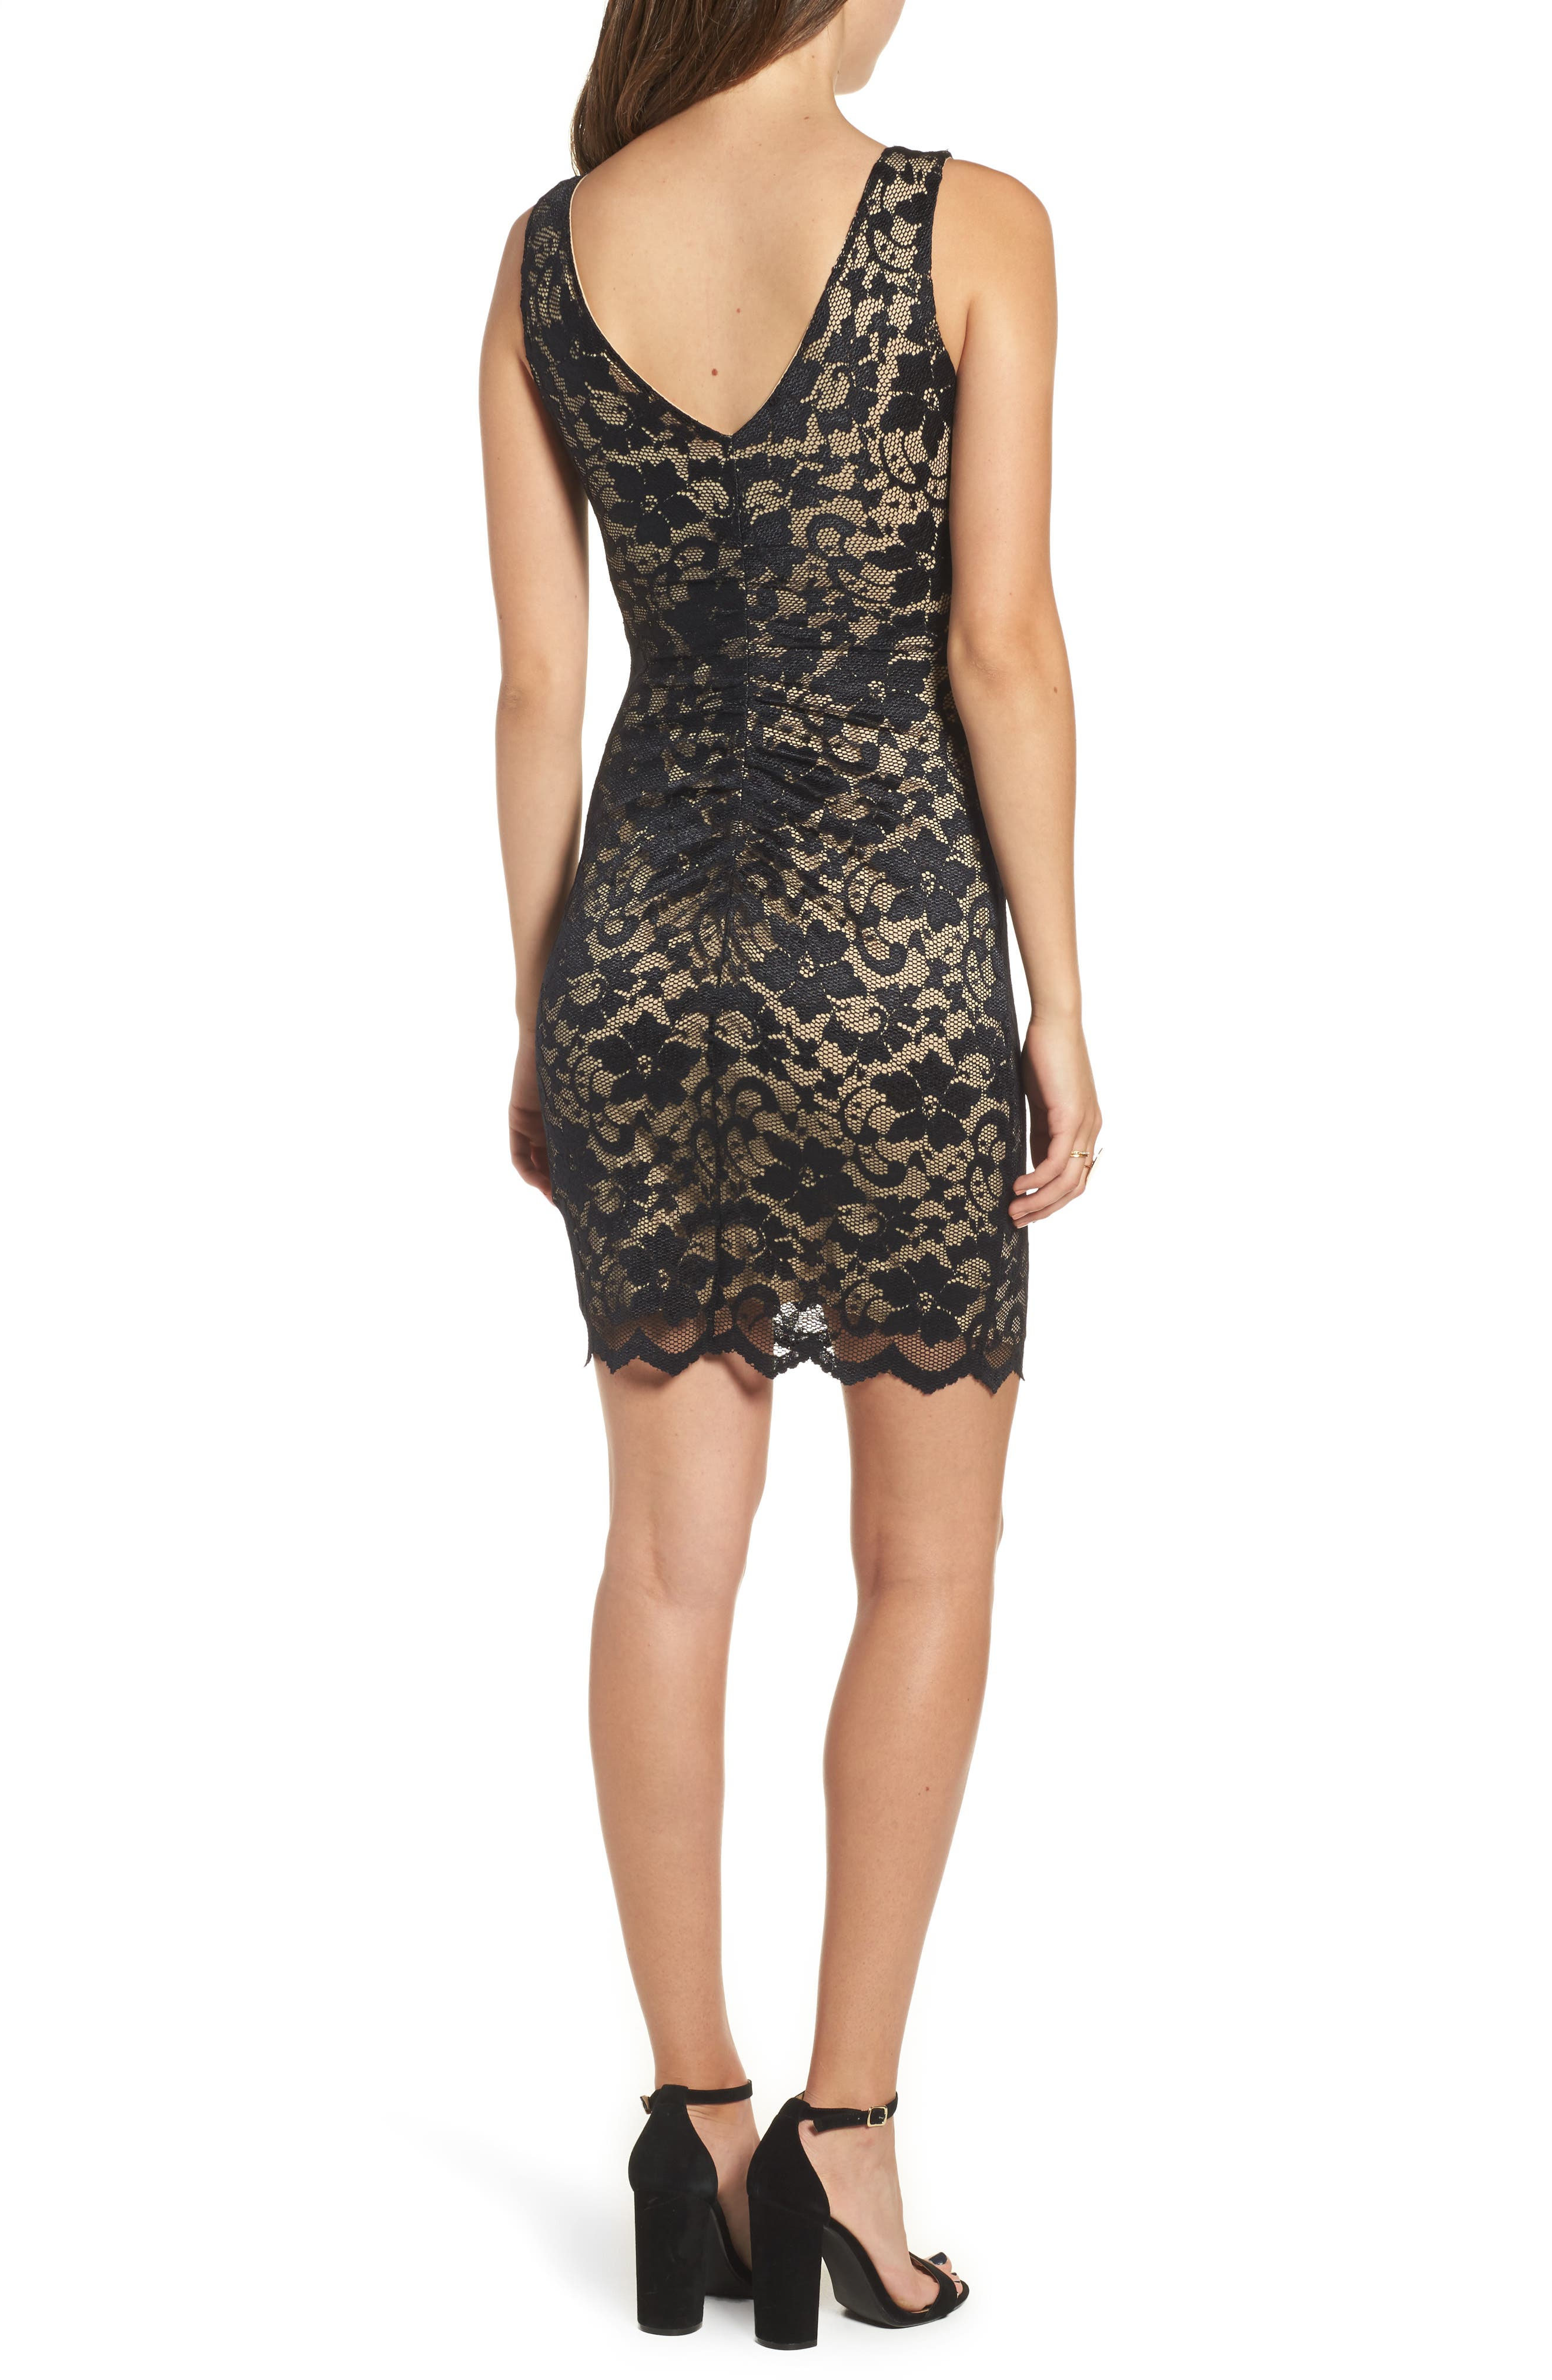 Love Nickie Lew Lace Body Con Dress,                             Alternate thumbnail 2, color,                             Black/ Nude